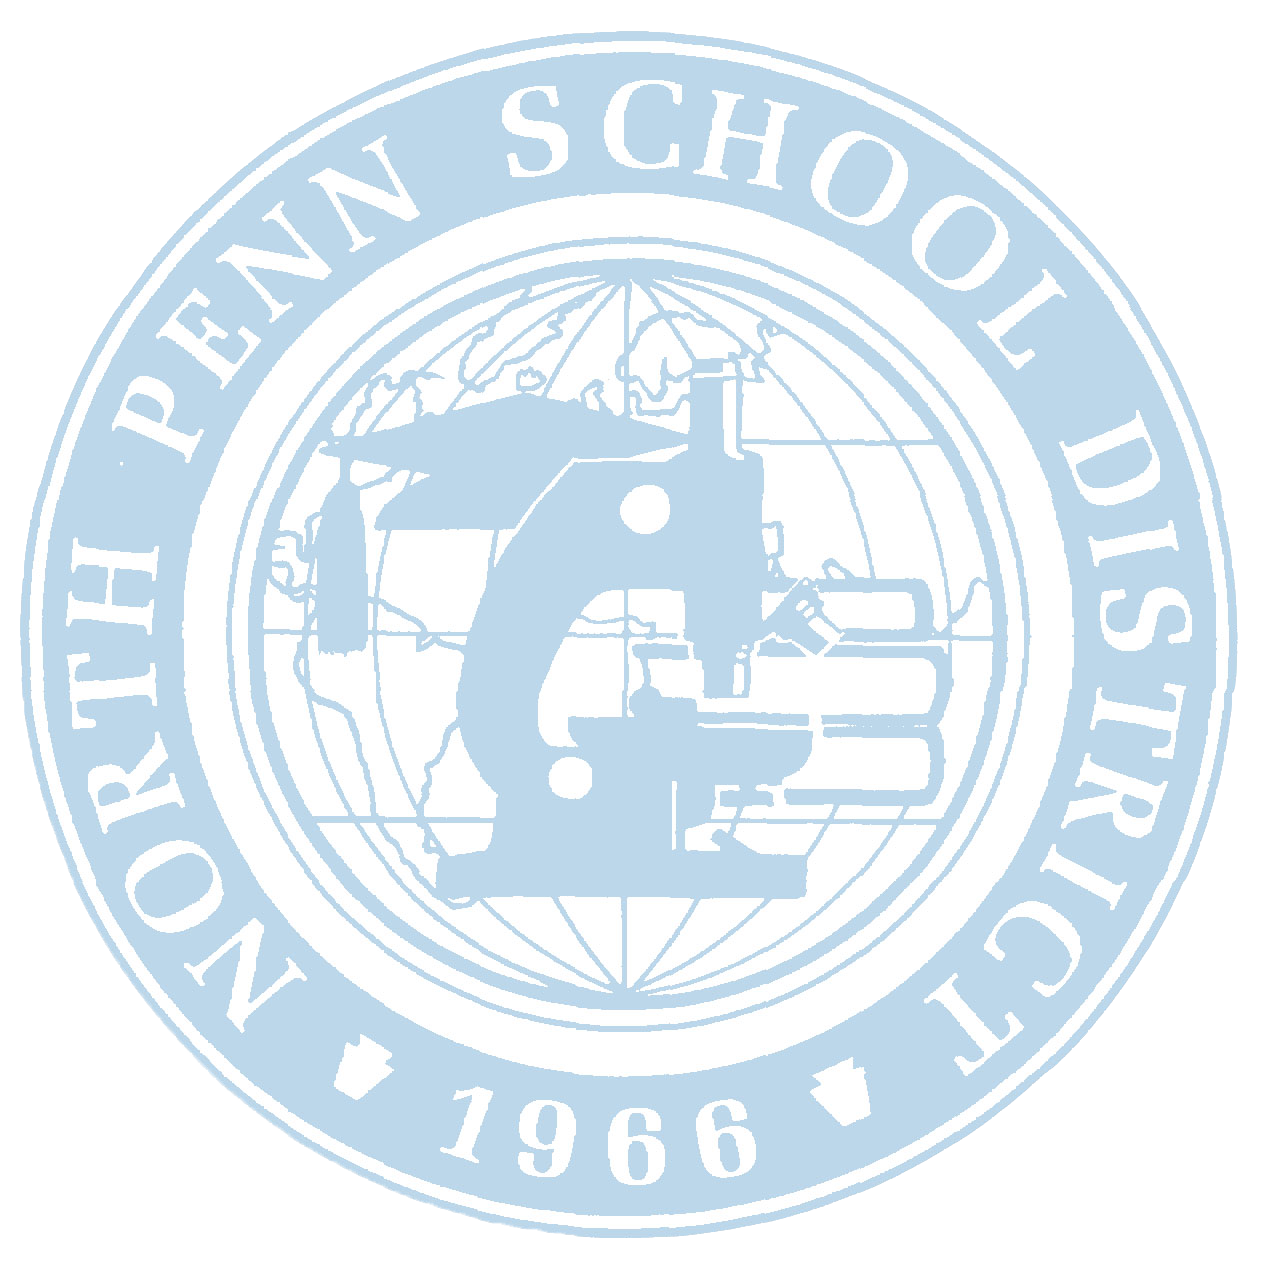 Home – North Penn School District Regarding North Penn School District Calendar